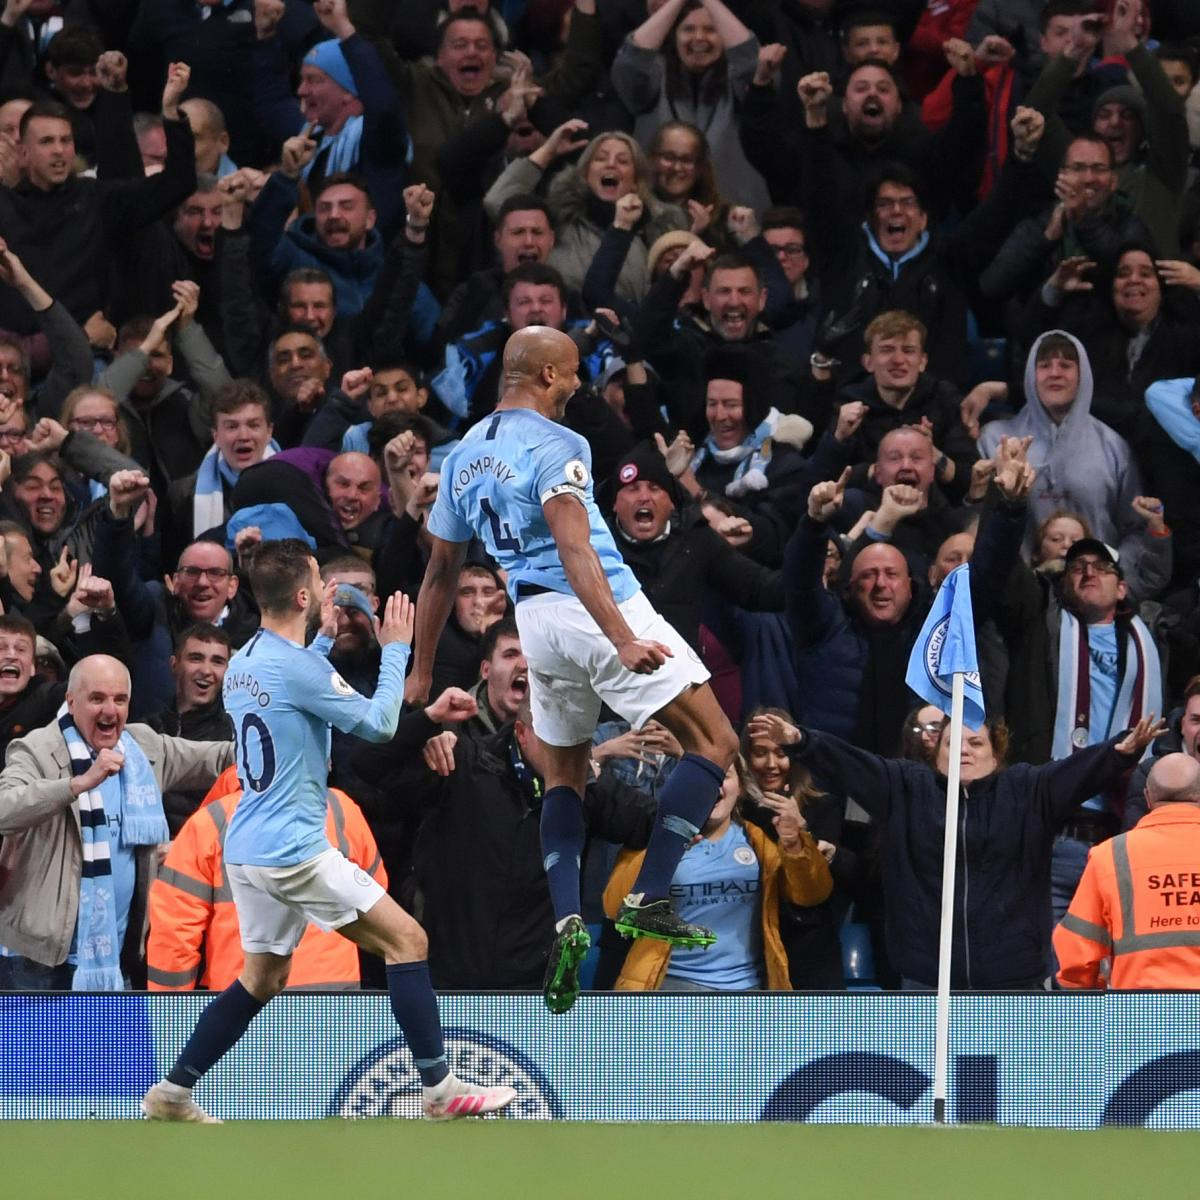 Manchester City are one step away from repeating as Premier League champions after beating Leicester City 1-0 on Monday. Vincent Kompany scored the only goal of the match, a fantastic long-range strike in the second half...